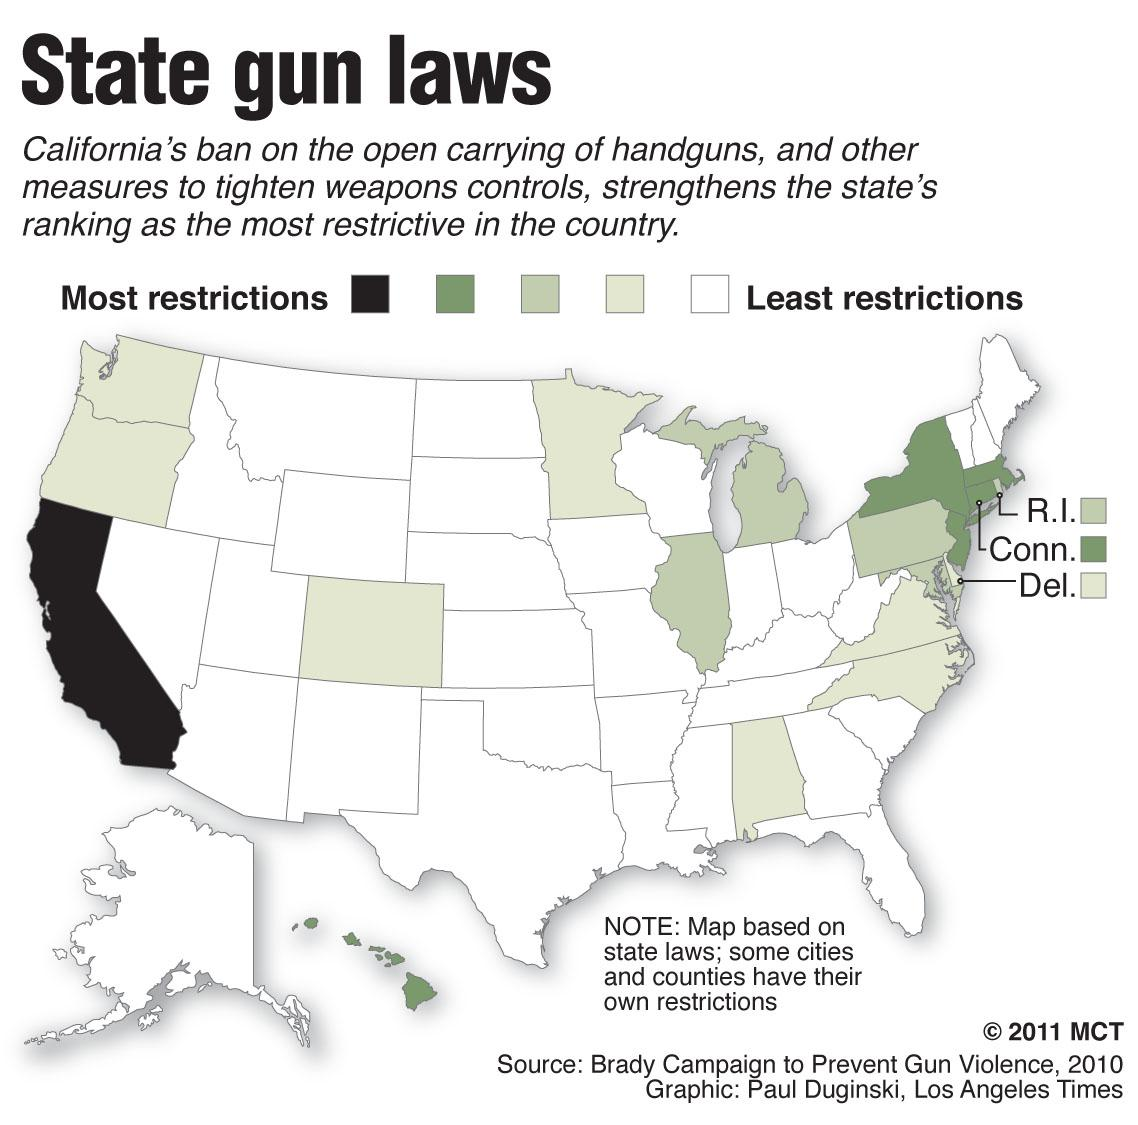 California: Did tough gun control laws cut firearms deaths?